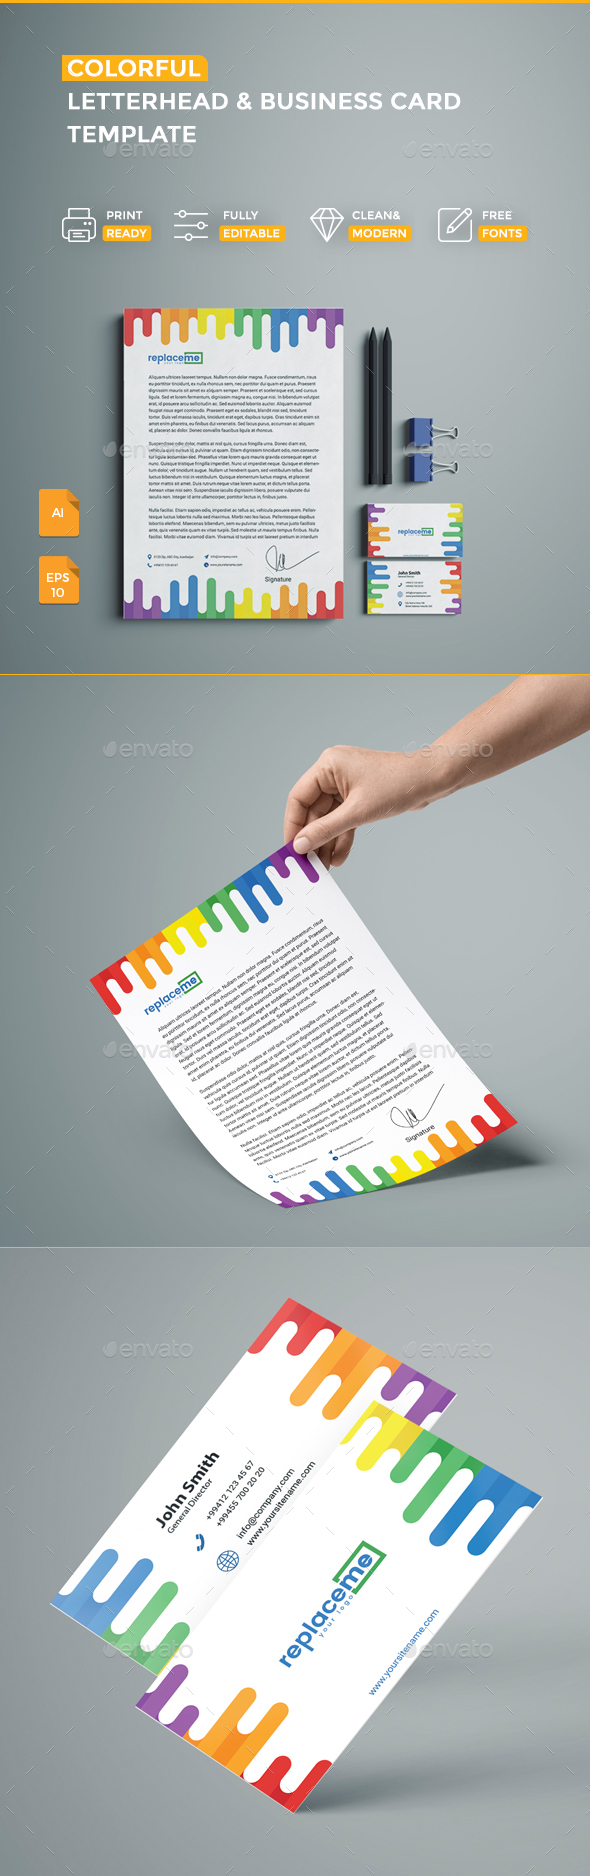 Colorful Business Card & Letterhead - Business Cards Print Templates